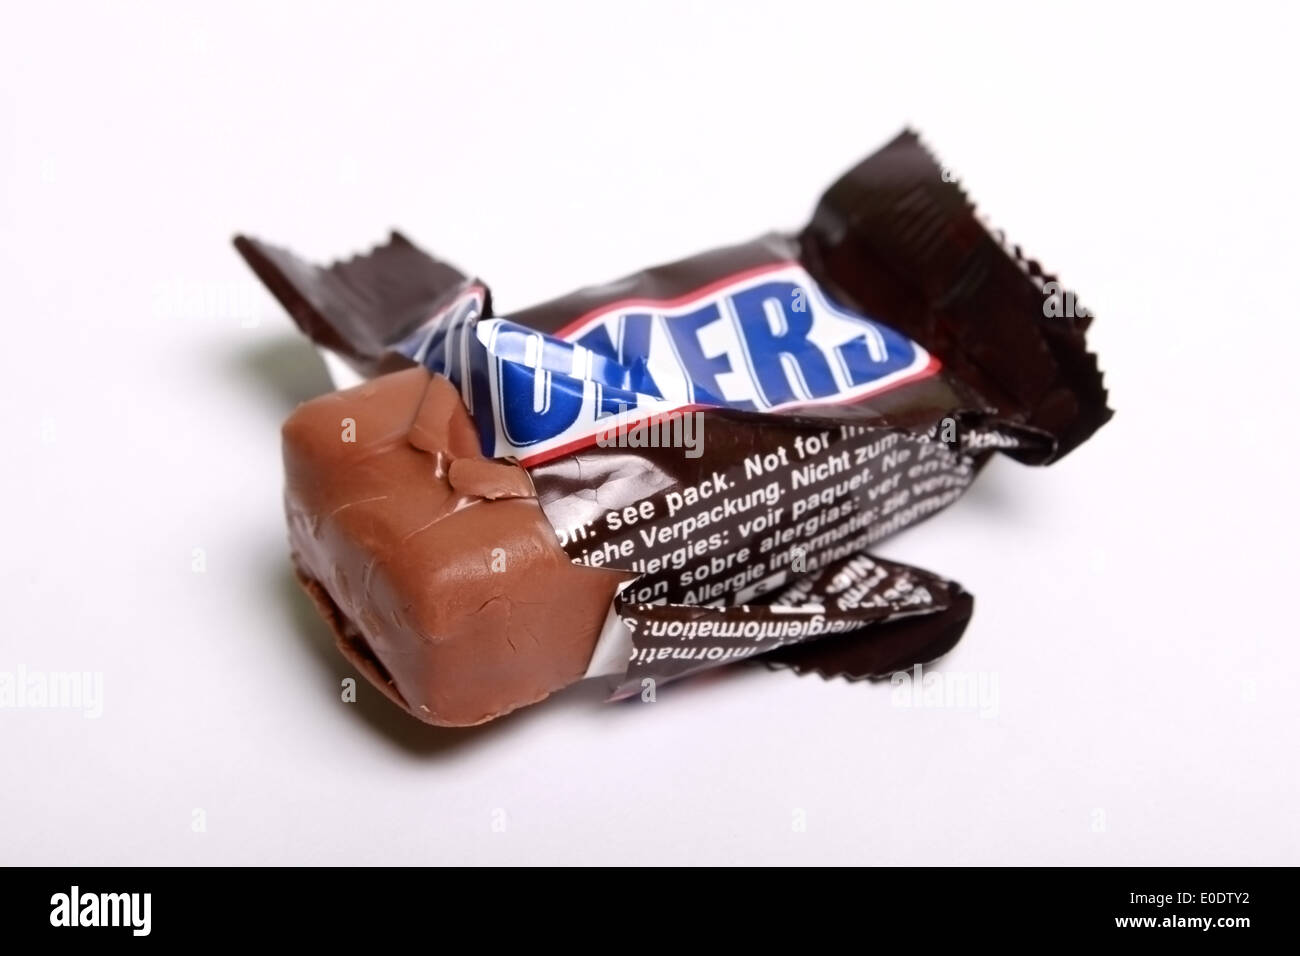 snickers chocolate bar in wrapper - Stock Image